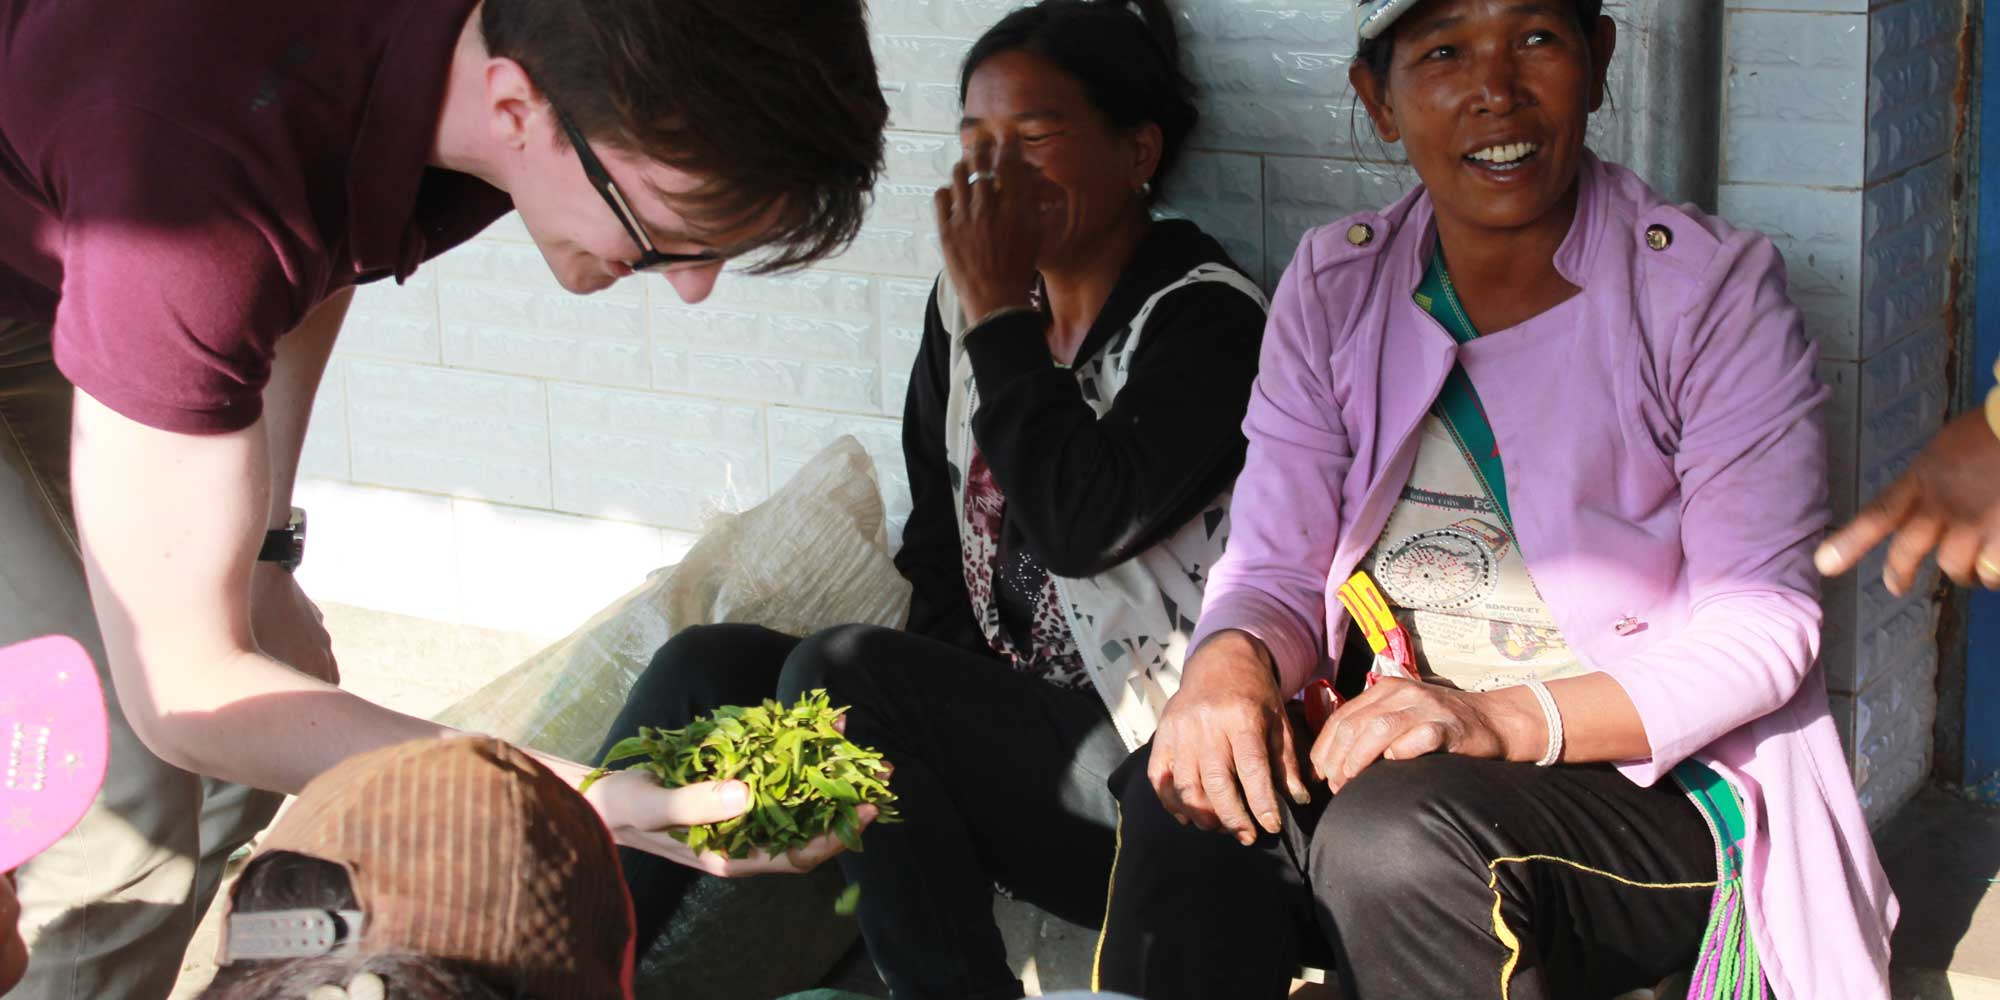 Tom inspect freshly picked tea leaves with local Chinese tea pickers